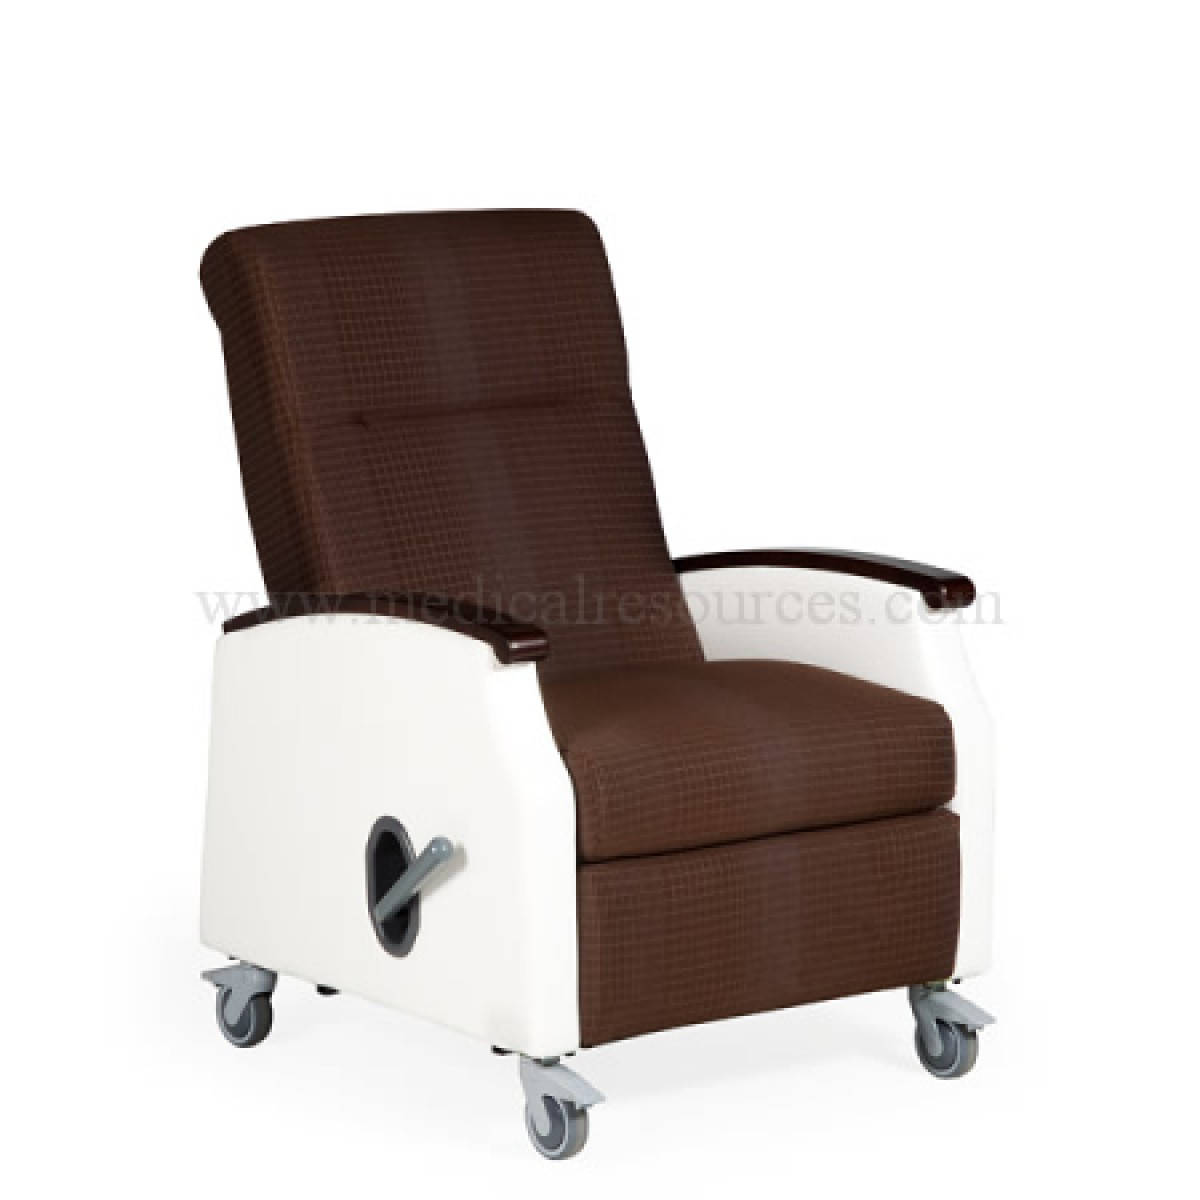 Chair Covers For Recliners Recliners Power Recliners